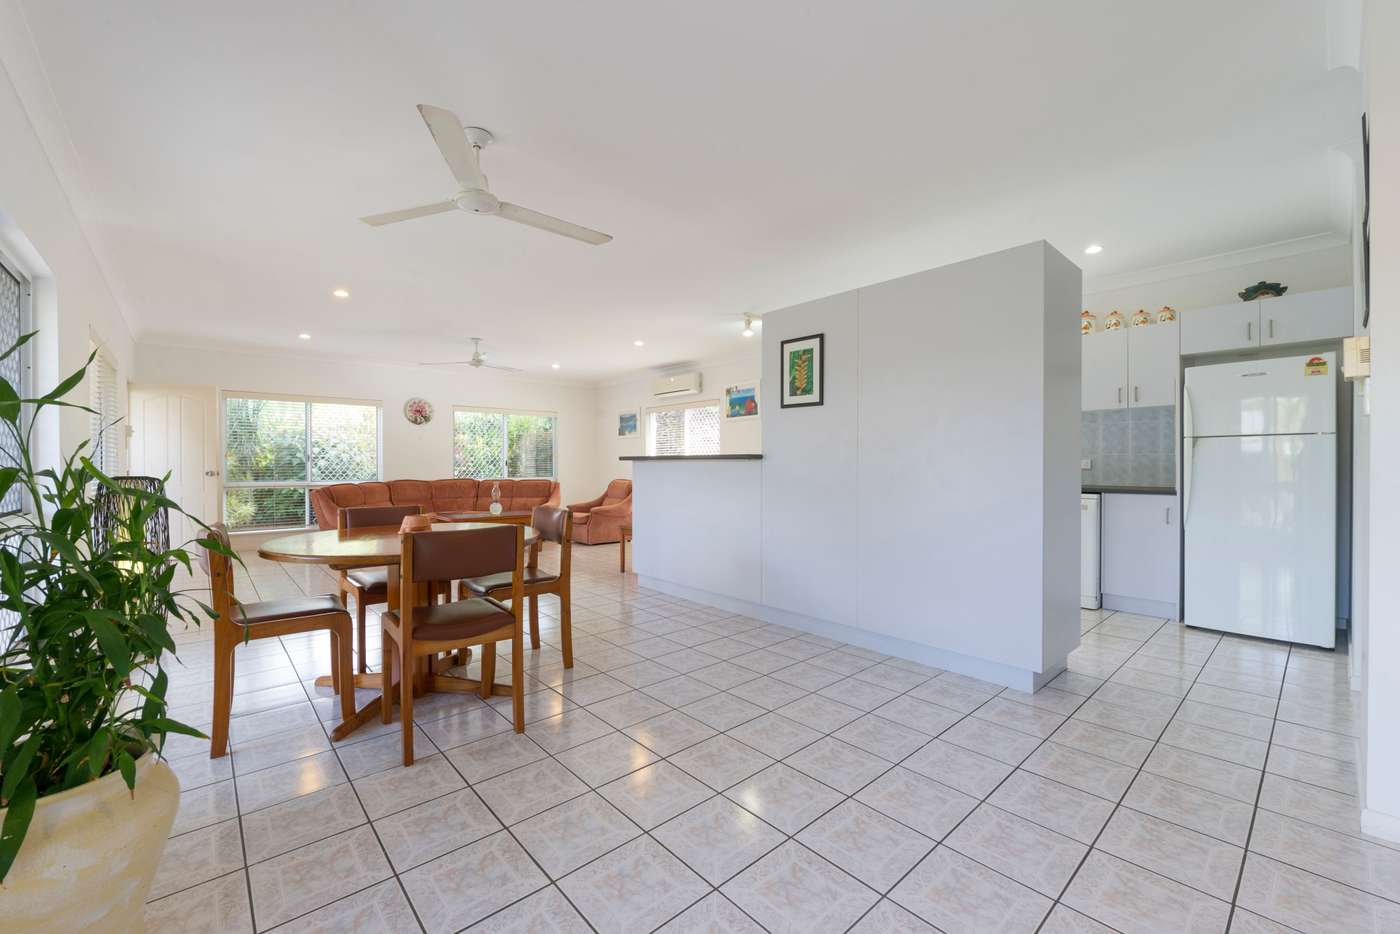 Seventh view of Homely house listing, 15 Albatross Close, Cooya Beach QLD 4873